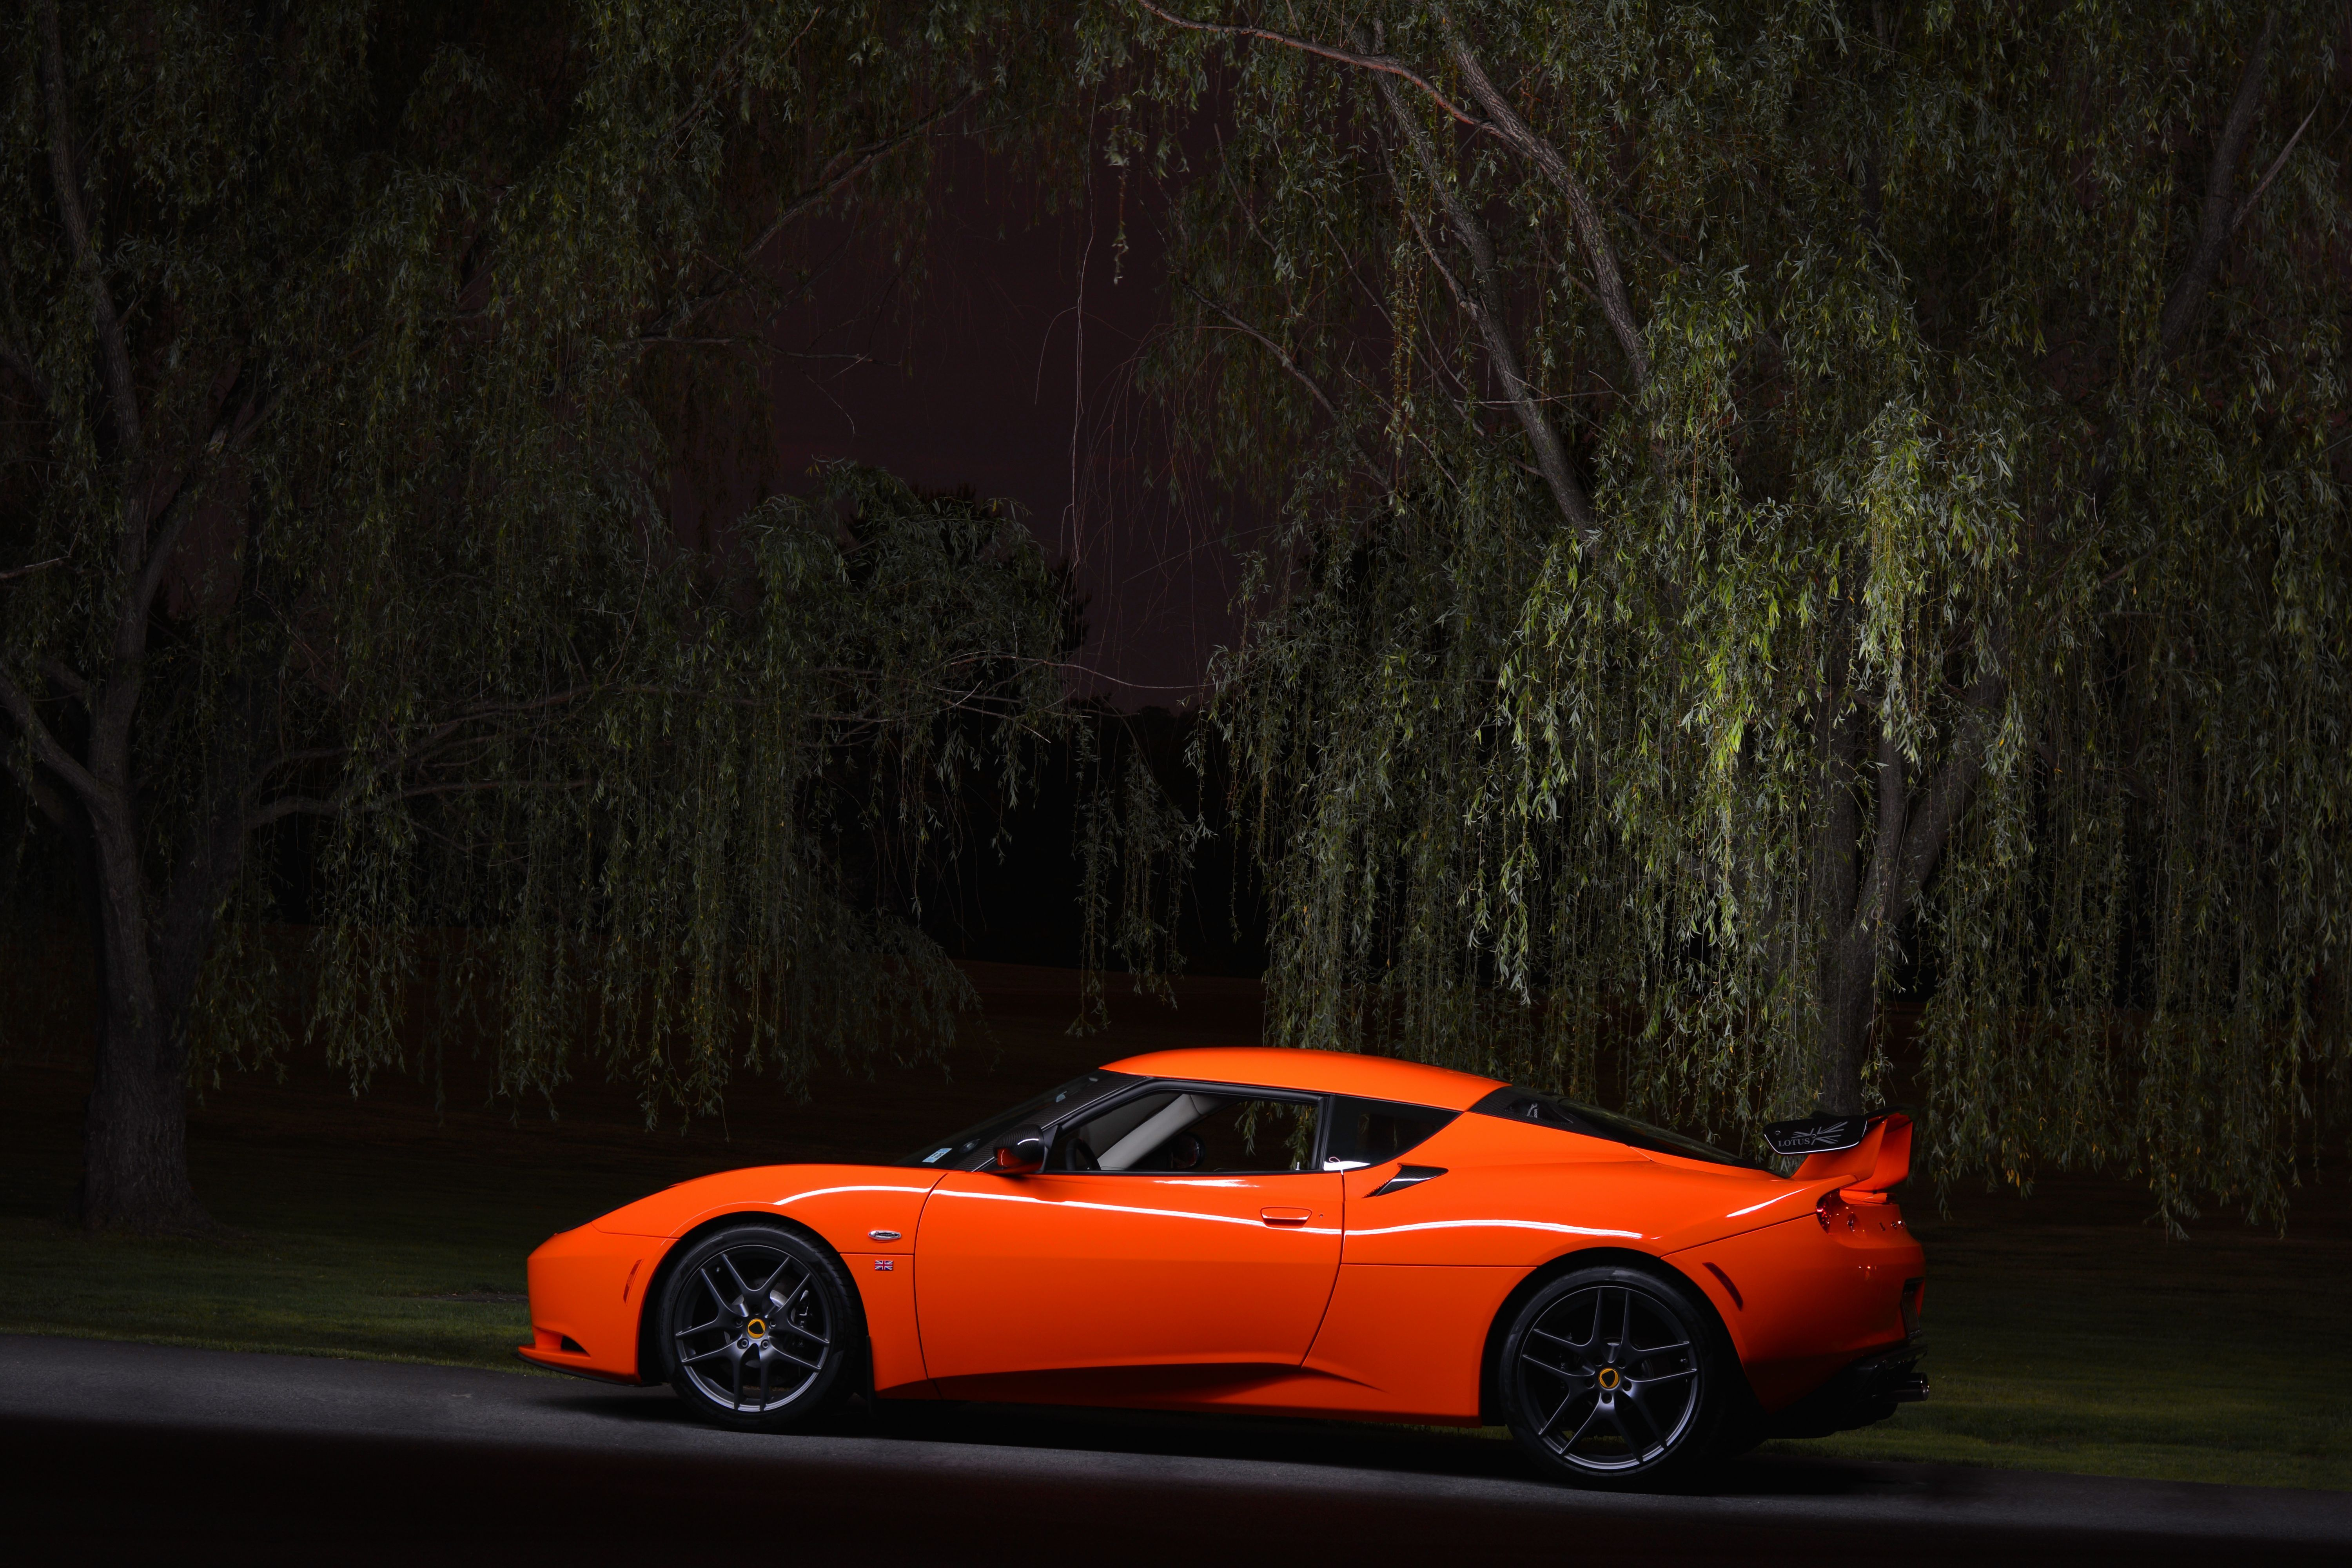 Lotus Evora at night